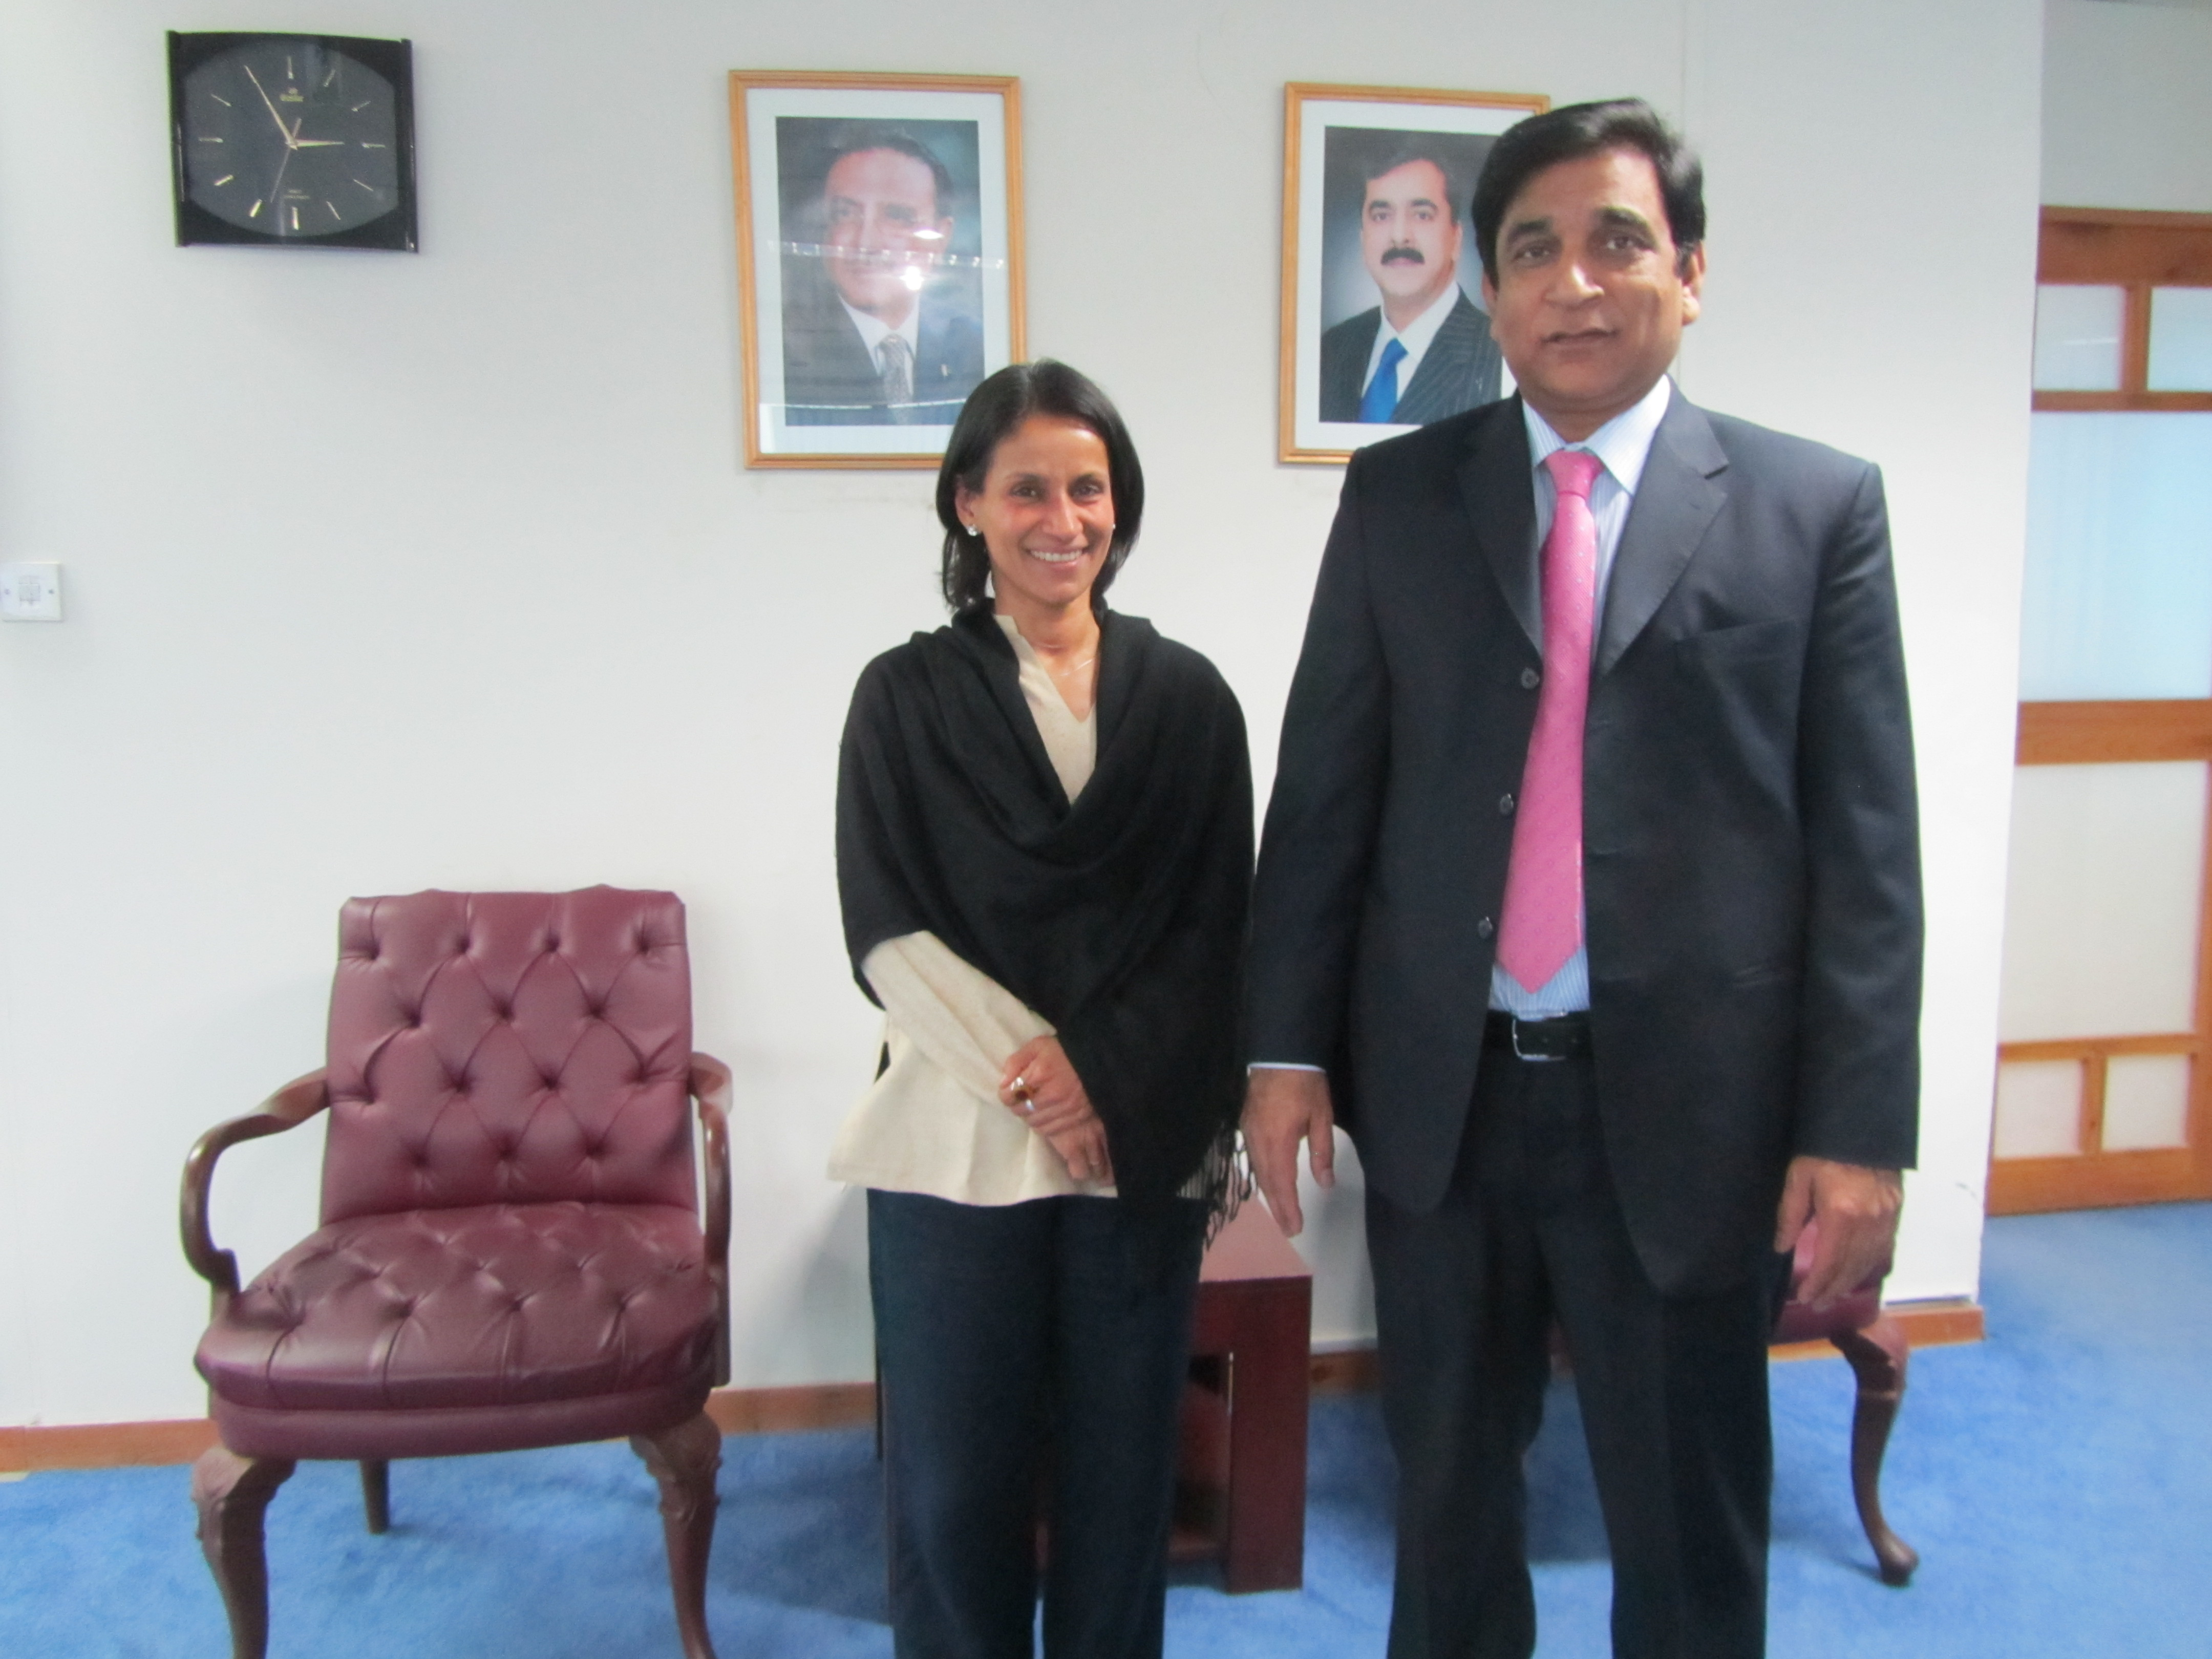 MRG's Shobha Das with Dr Paul Bhatti, Pakistan's Minister for National Harmony and Minority Affairs.